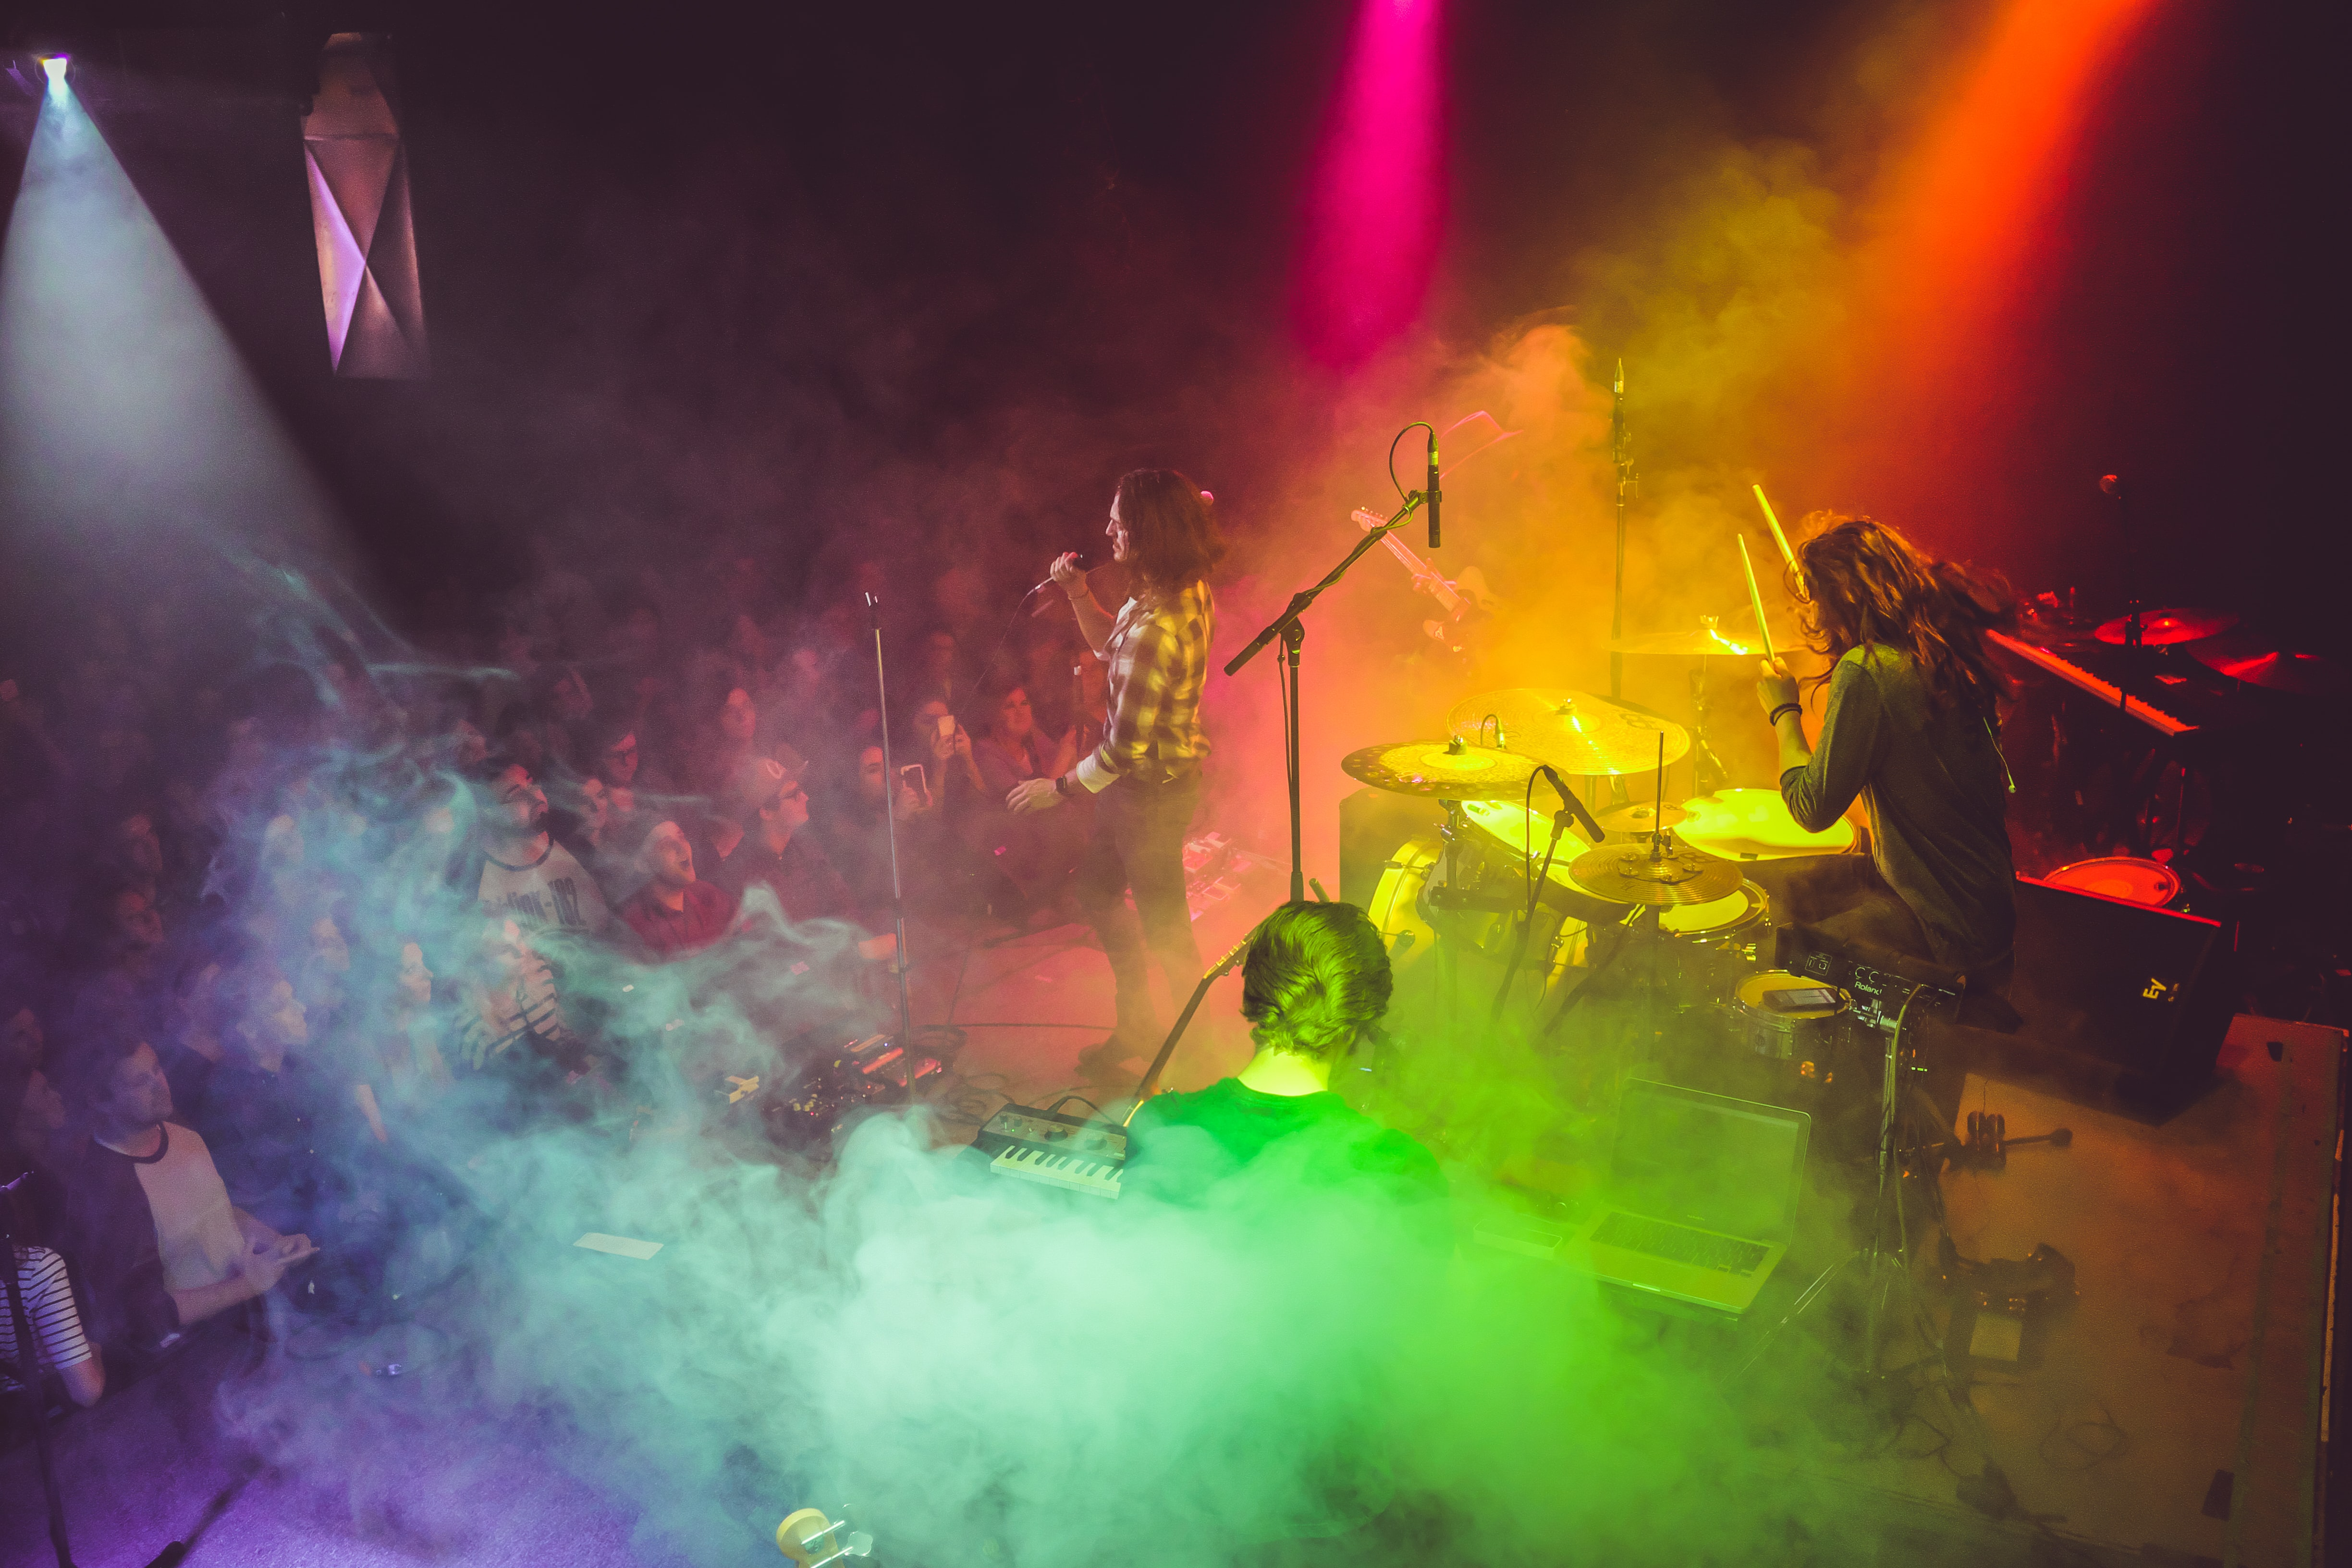 A band performing on stage with rainbow-colored lights flooding them from above